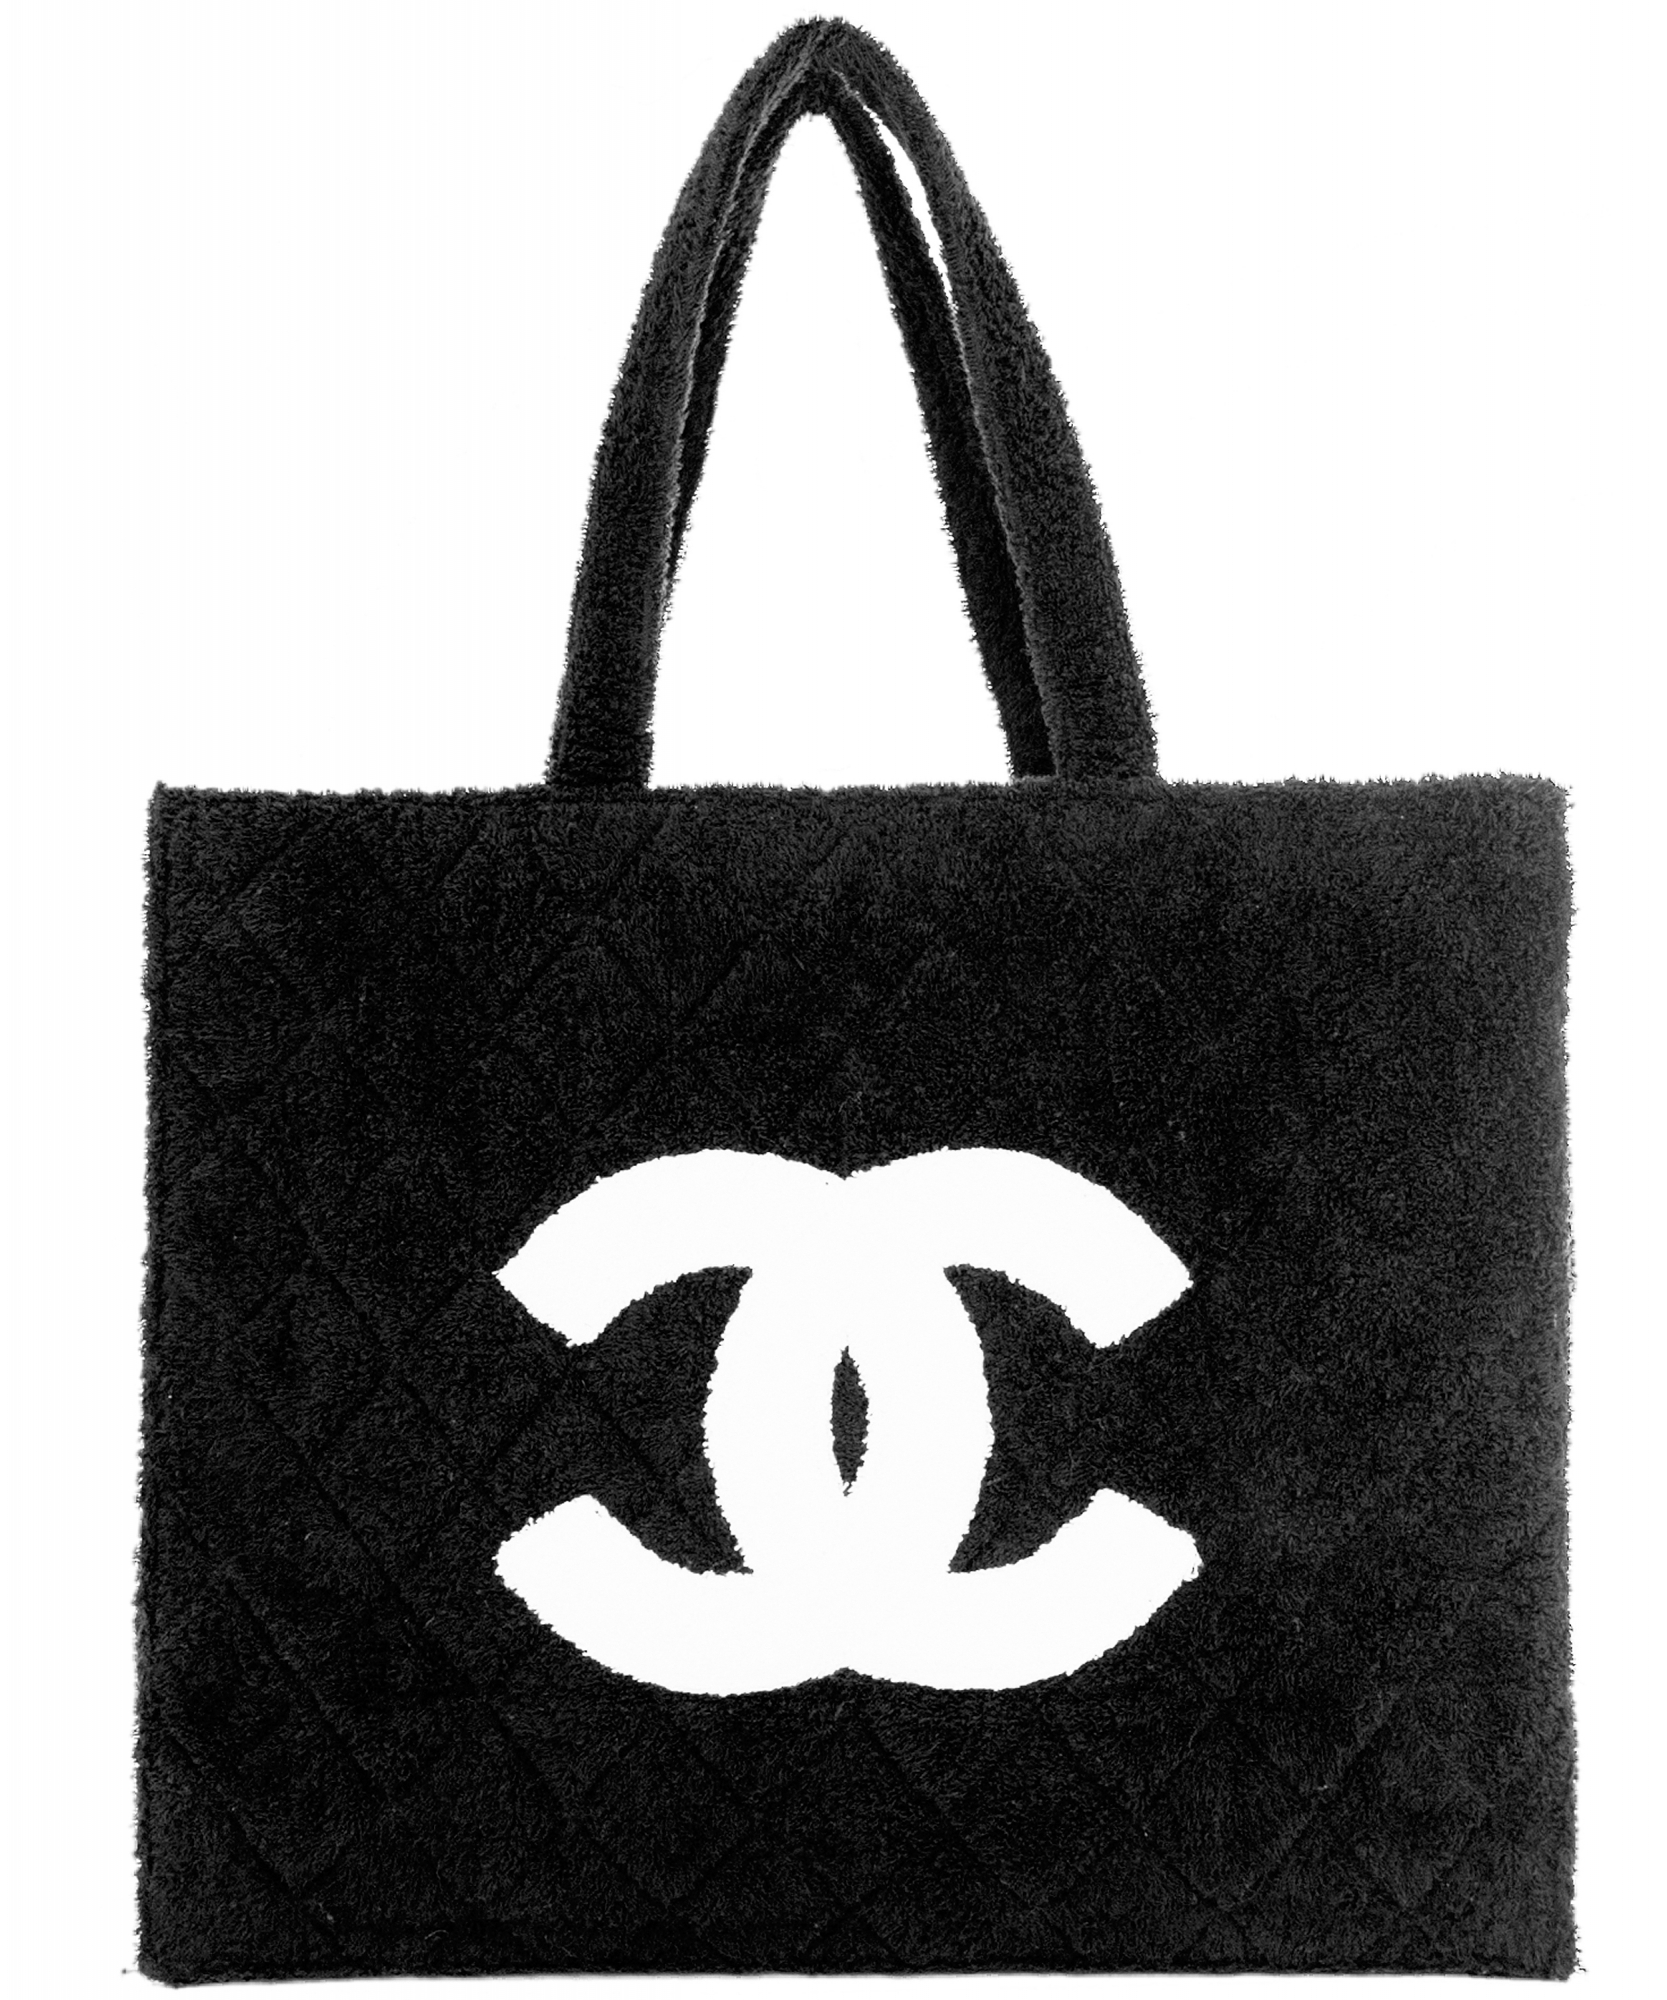 7a02dd48e975 Chanel Black Quilted Terry Cloth Tote | La Doyenne